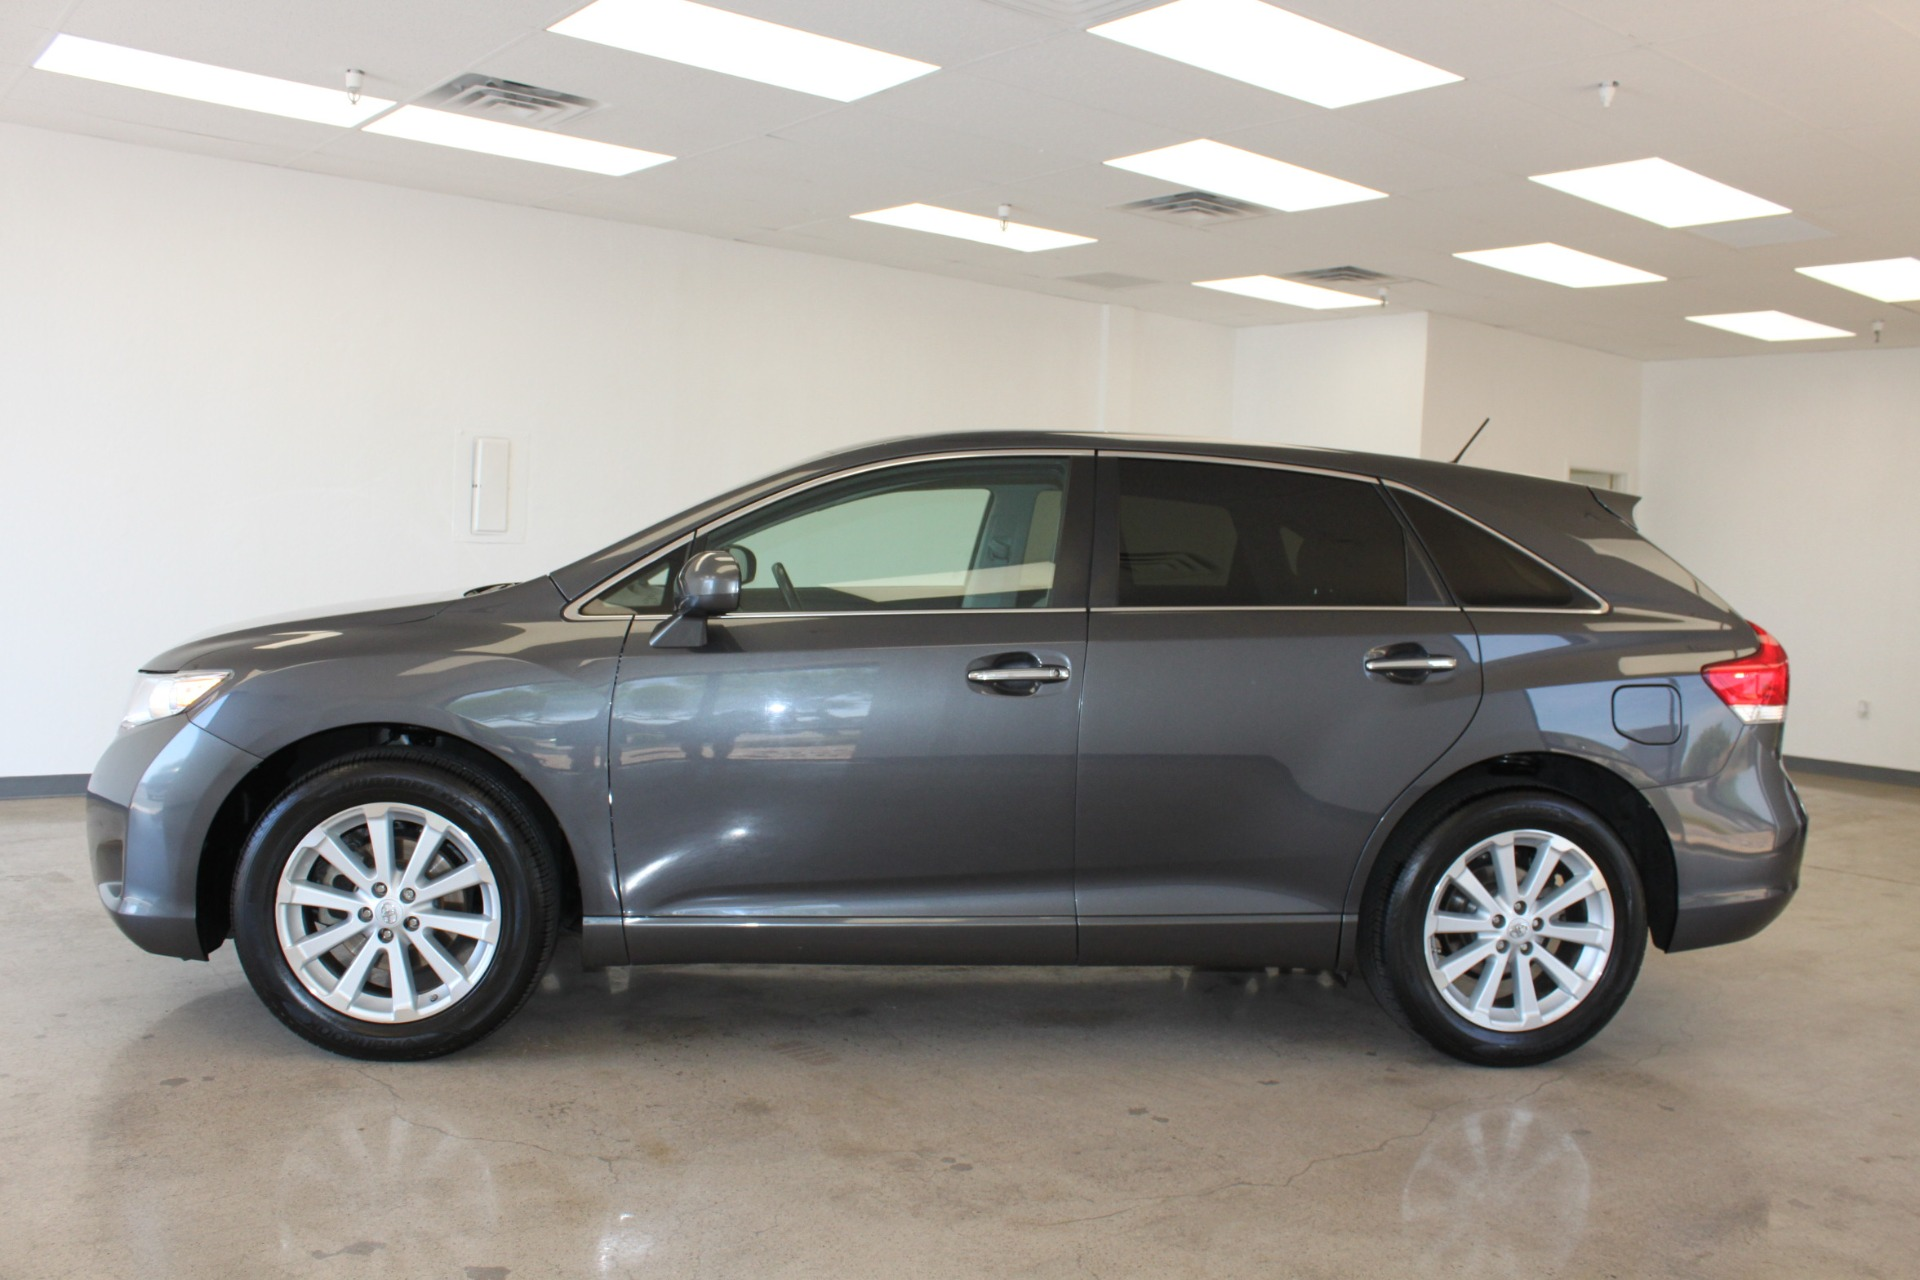 Used-2009-Toyota-Venza-SE-AWD-Ford